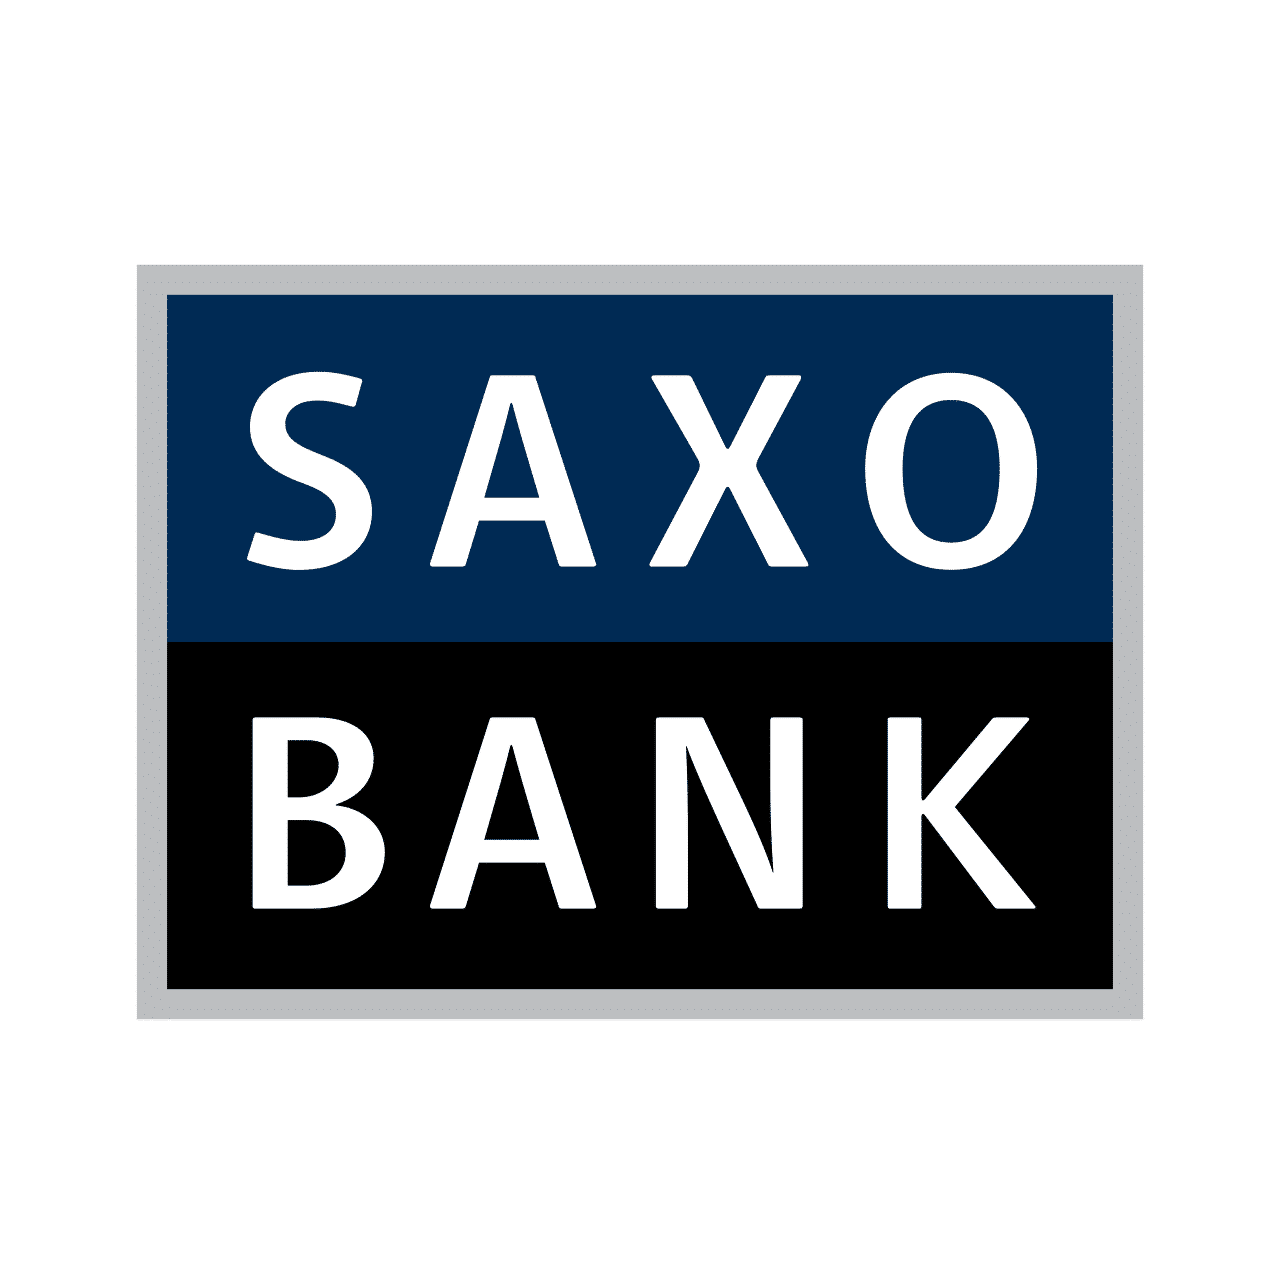 Saxo bank binary options